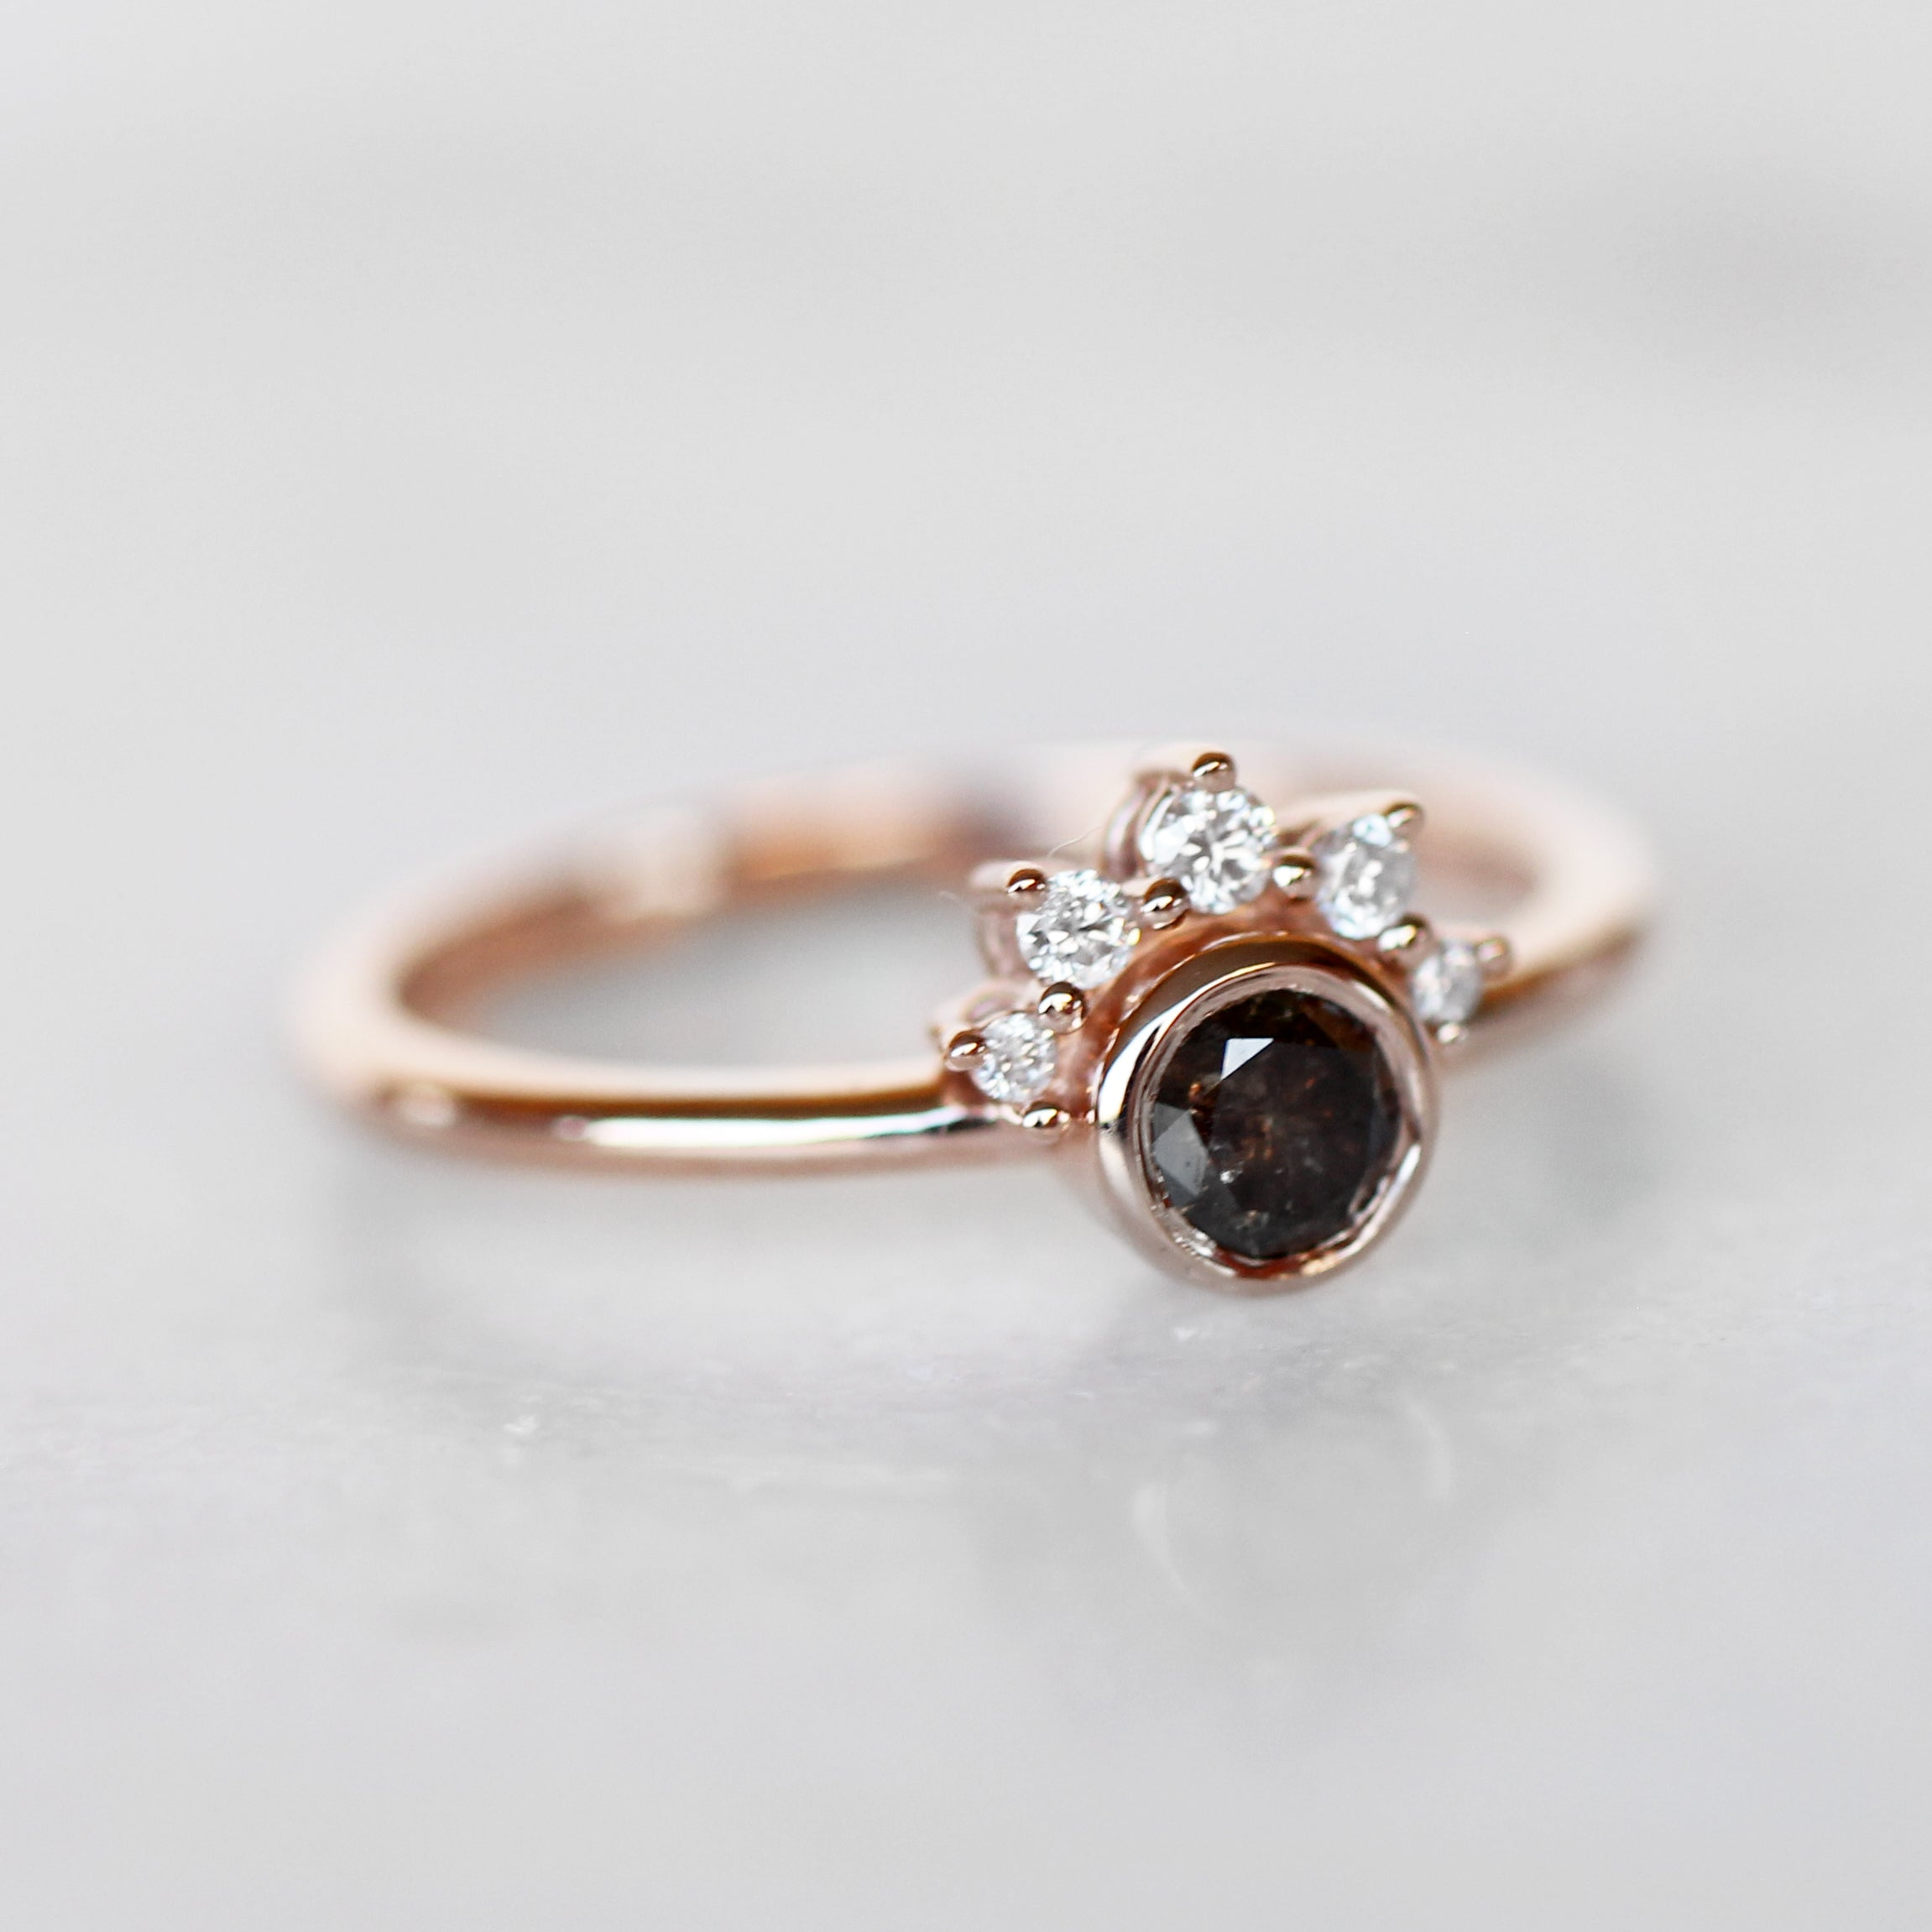 Ashlyn Ring with Black Celestial Diamond in 10k Rose Gold- Ready to Size and Ship - Midwinter Co. Alternative Bridal Rings and Modern Fine Jewelry